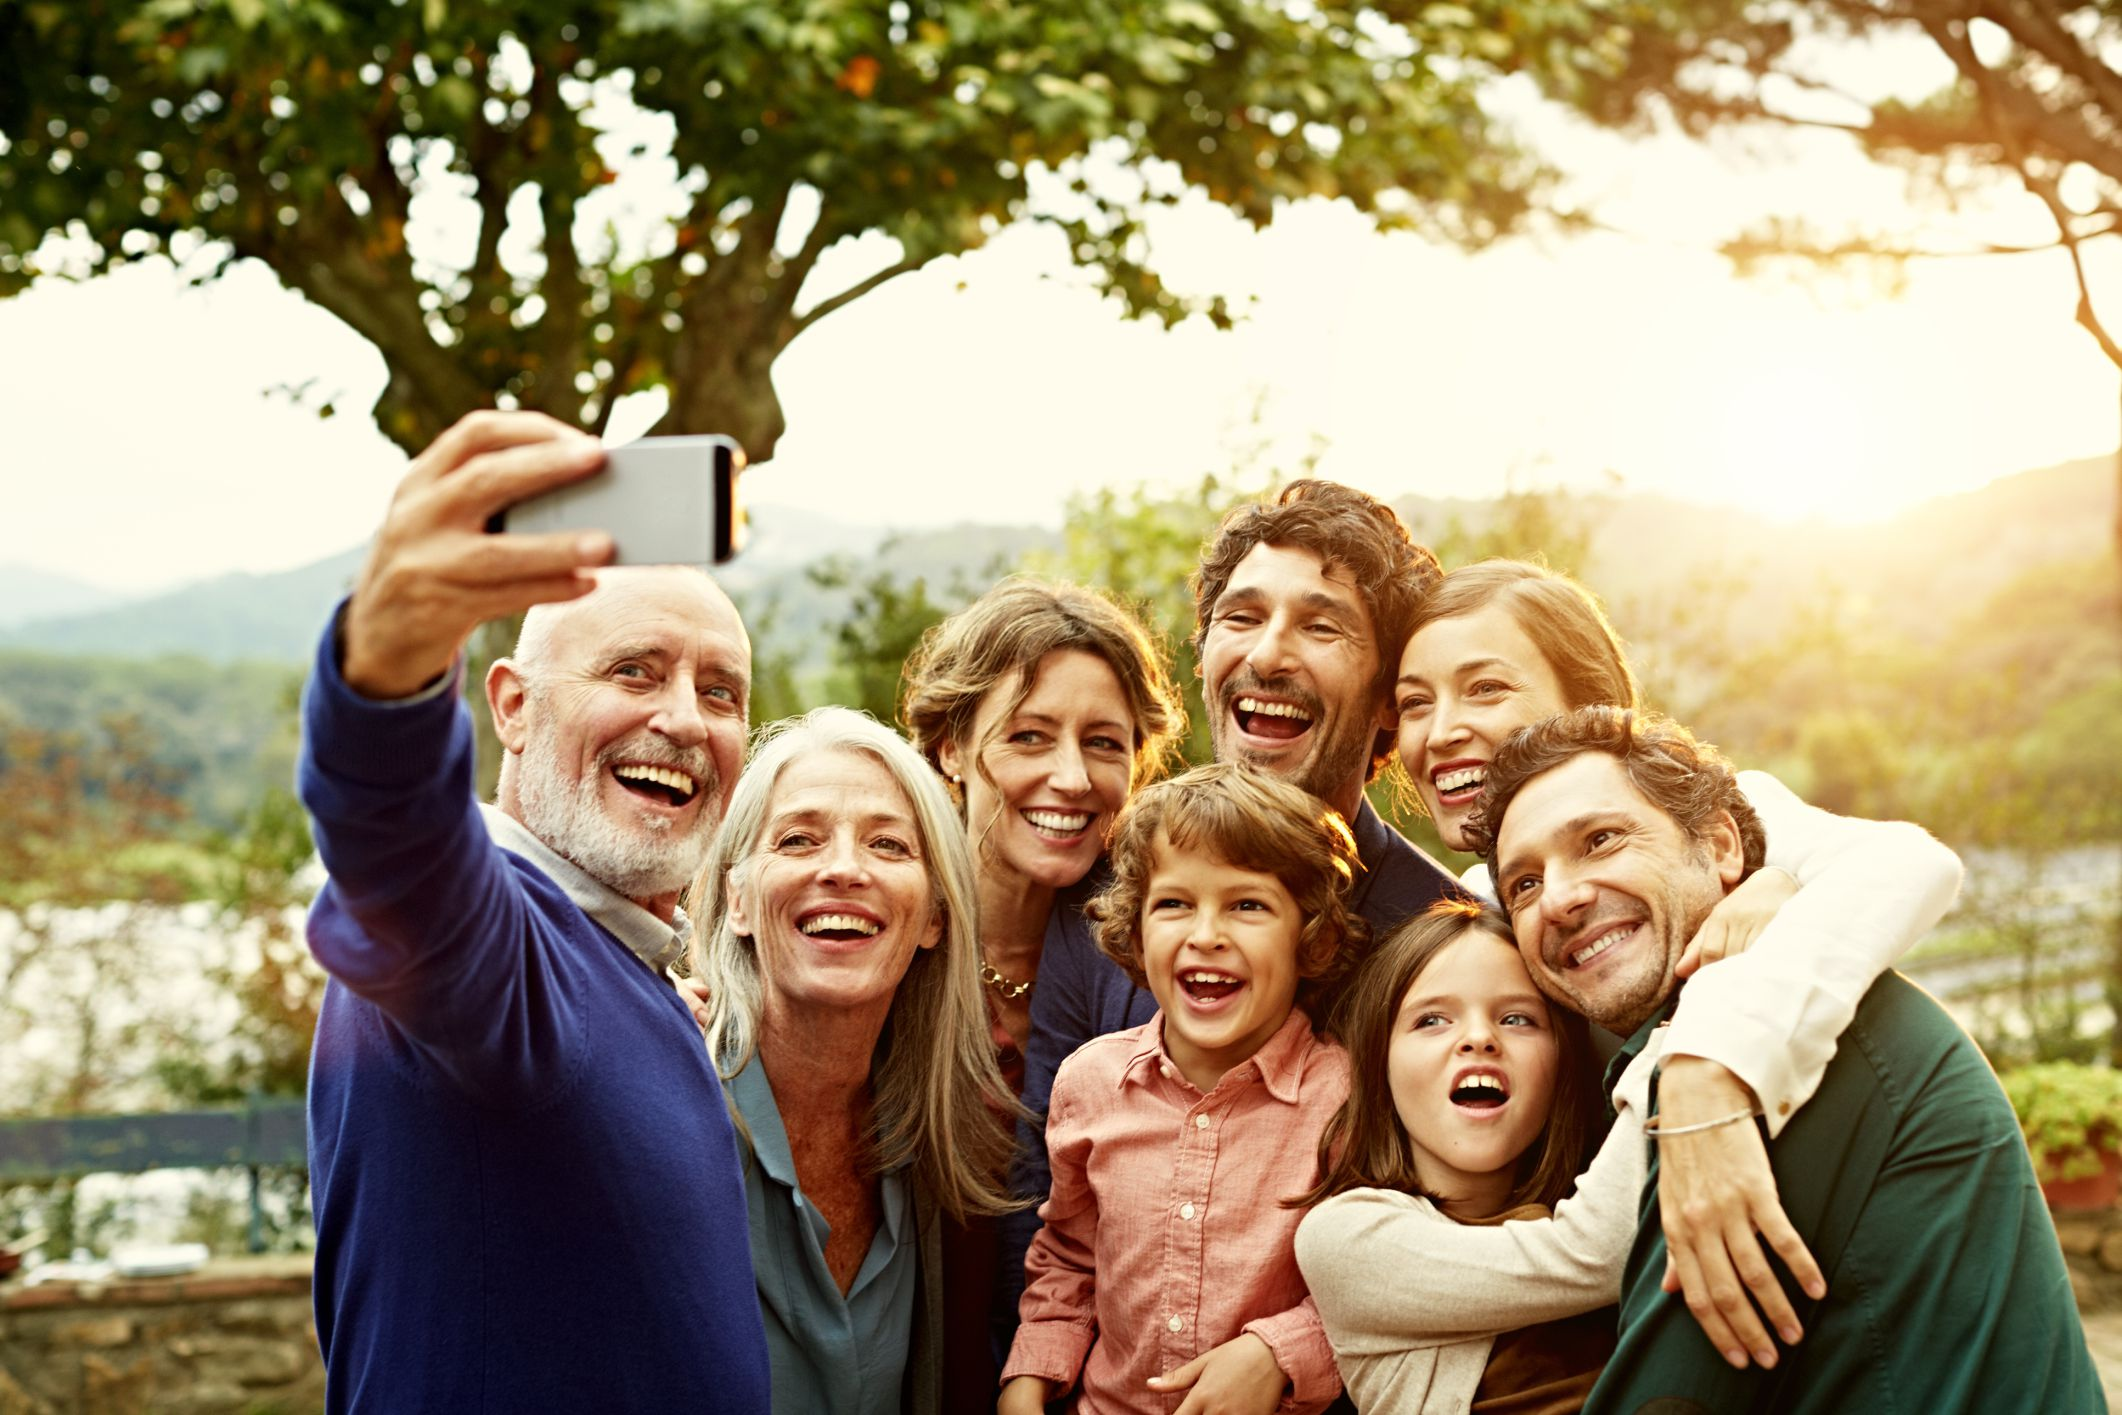 fostering family relationship I used to think keeping the mystery alive in a relationship seemed like an old-fashioned way of thinking, but maybe privacy in relationships is important.